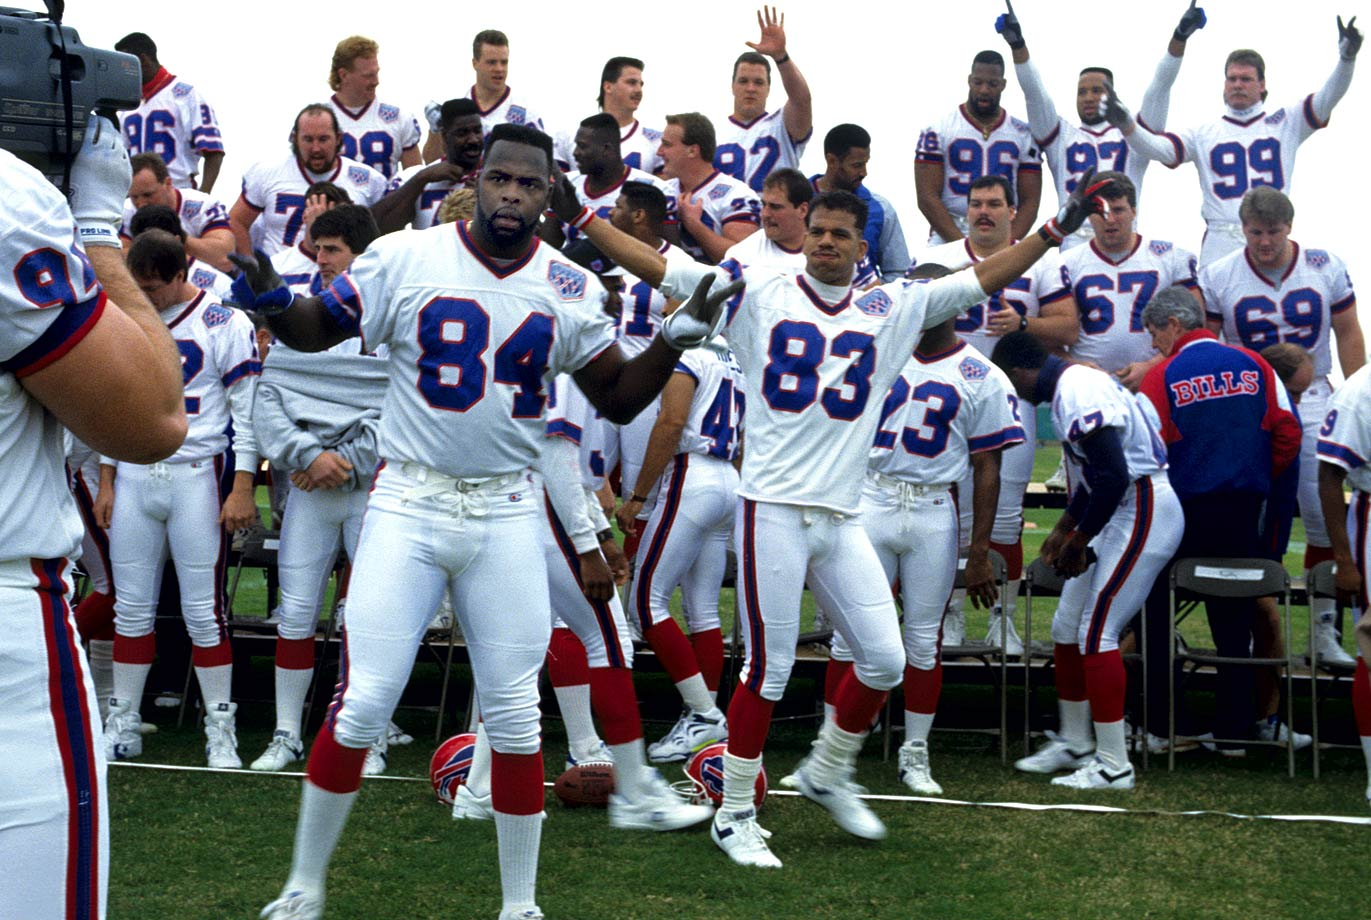 Buffalo Bills players leave a grandstand cheering during Super Bowl XXV Media Day. They weren't cheering a few days later as they fell to the Giants, 20-19, before 73,813 fans at Tampa Stadium.